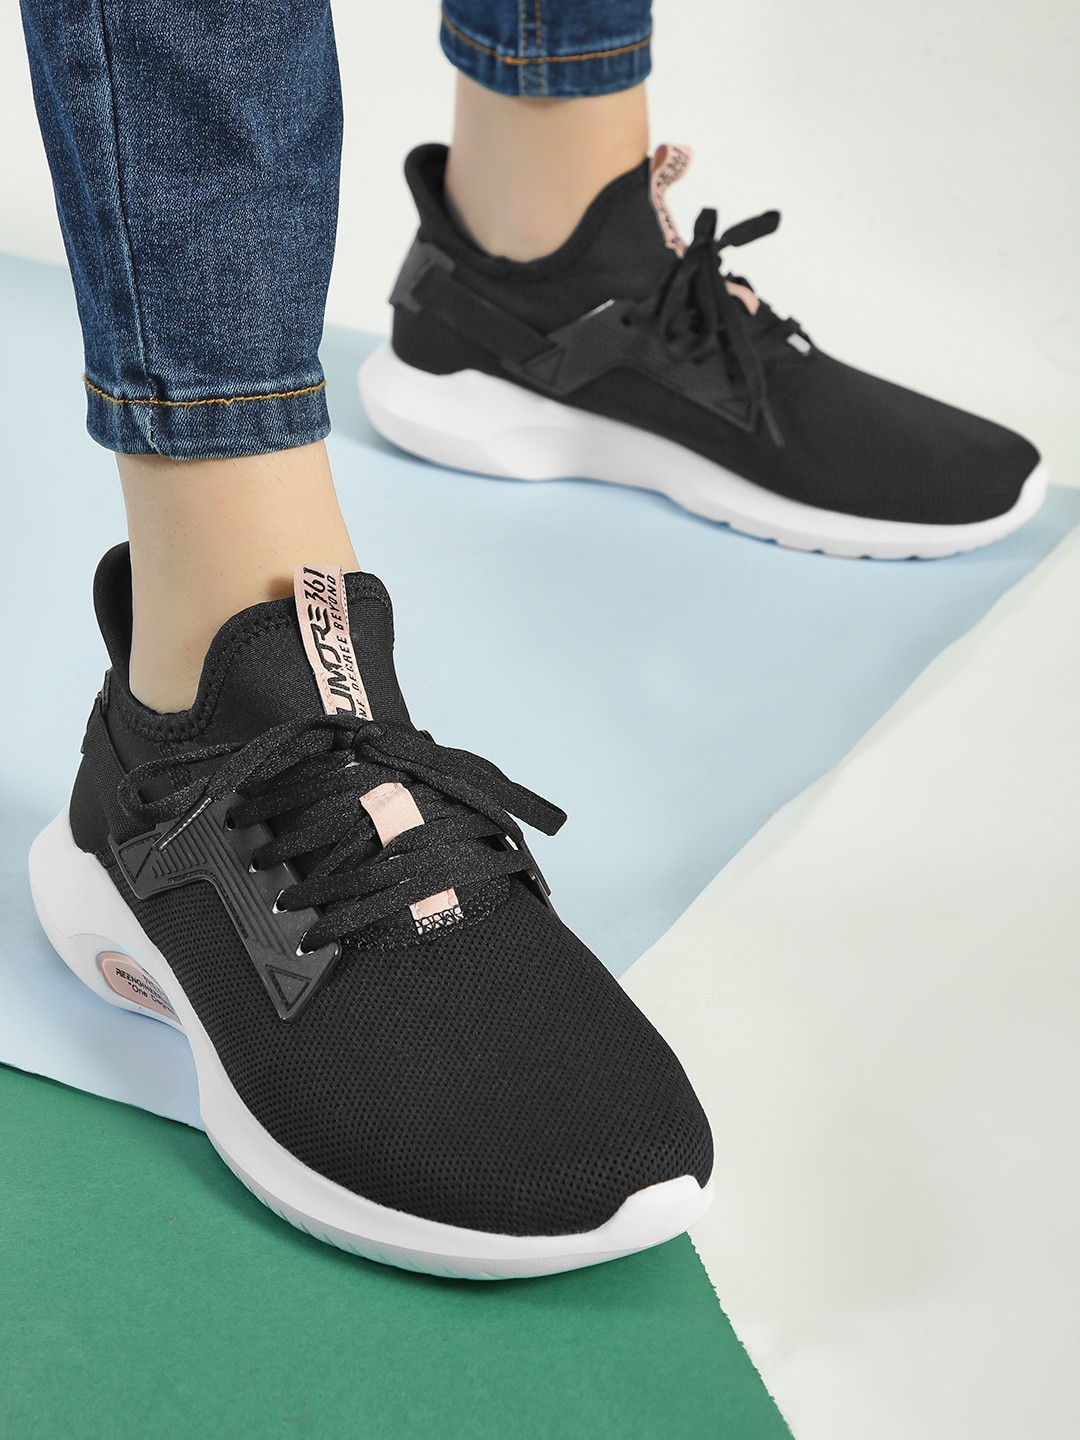 361 Degree Black Knitted Lace-Up Trainers 1